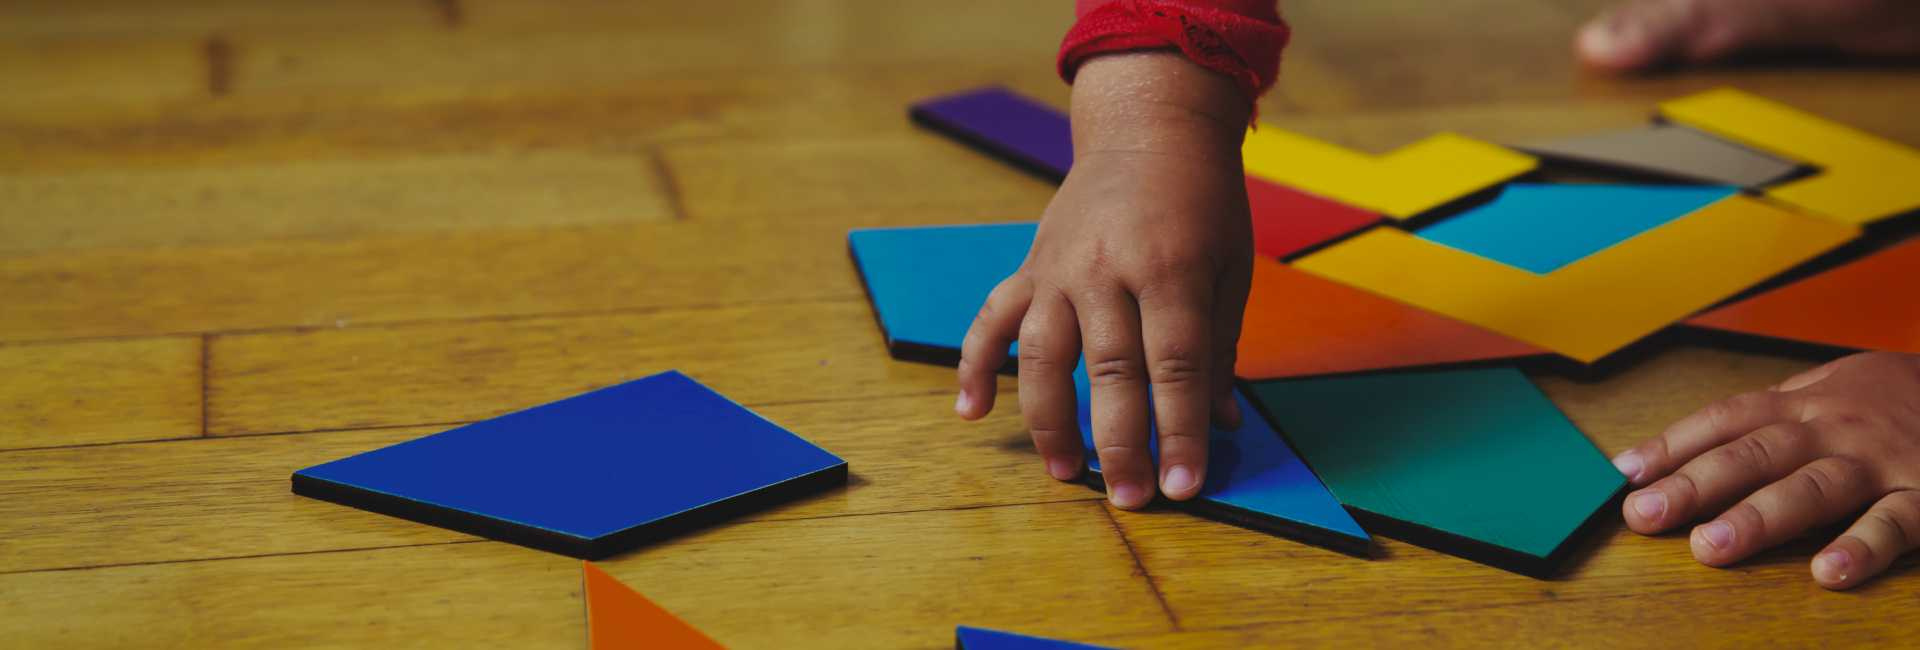 a child's hand reached for building toys on the floor